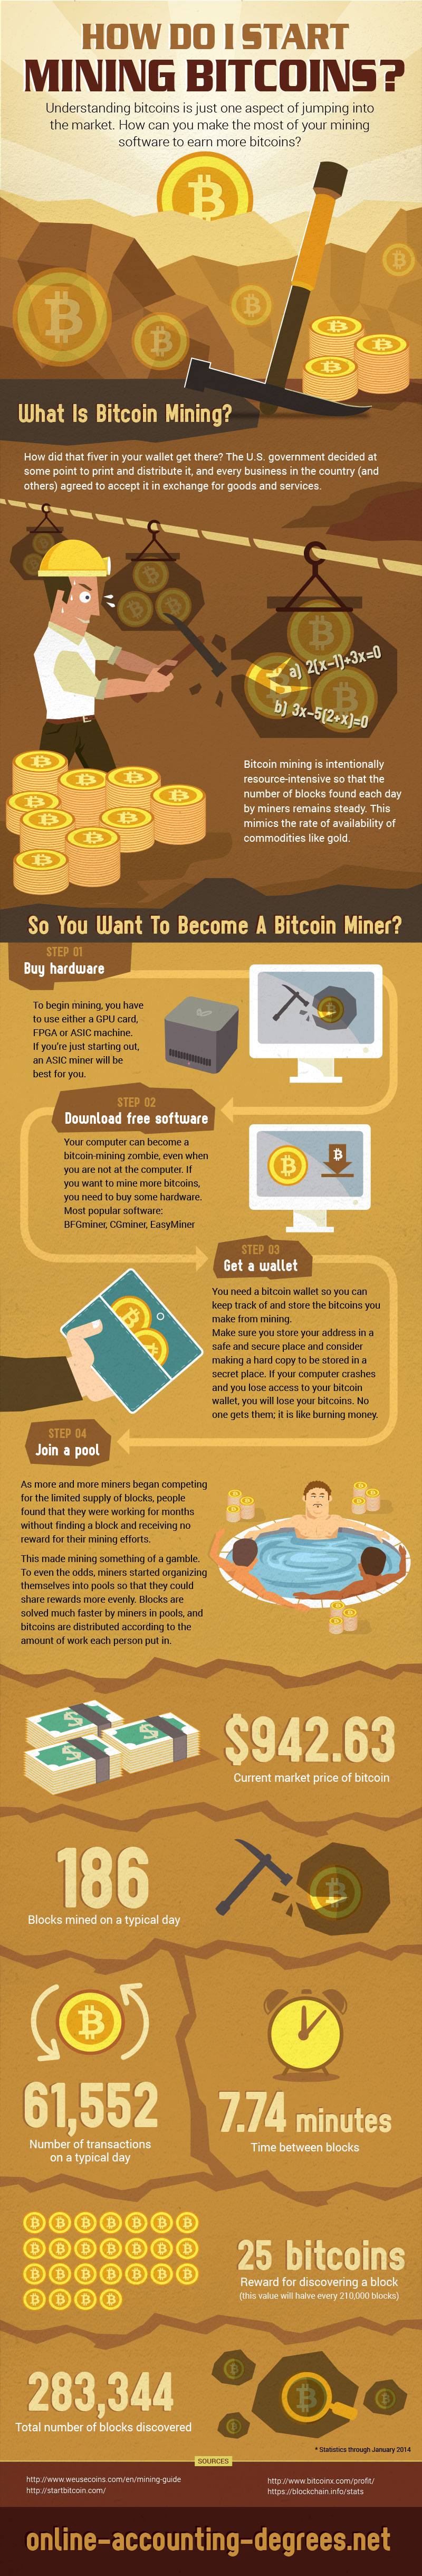 INFOGRAPHIC Understanding Bitcoins And How To Mine Them